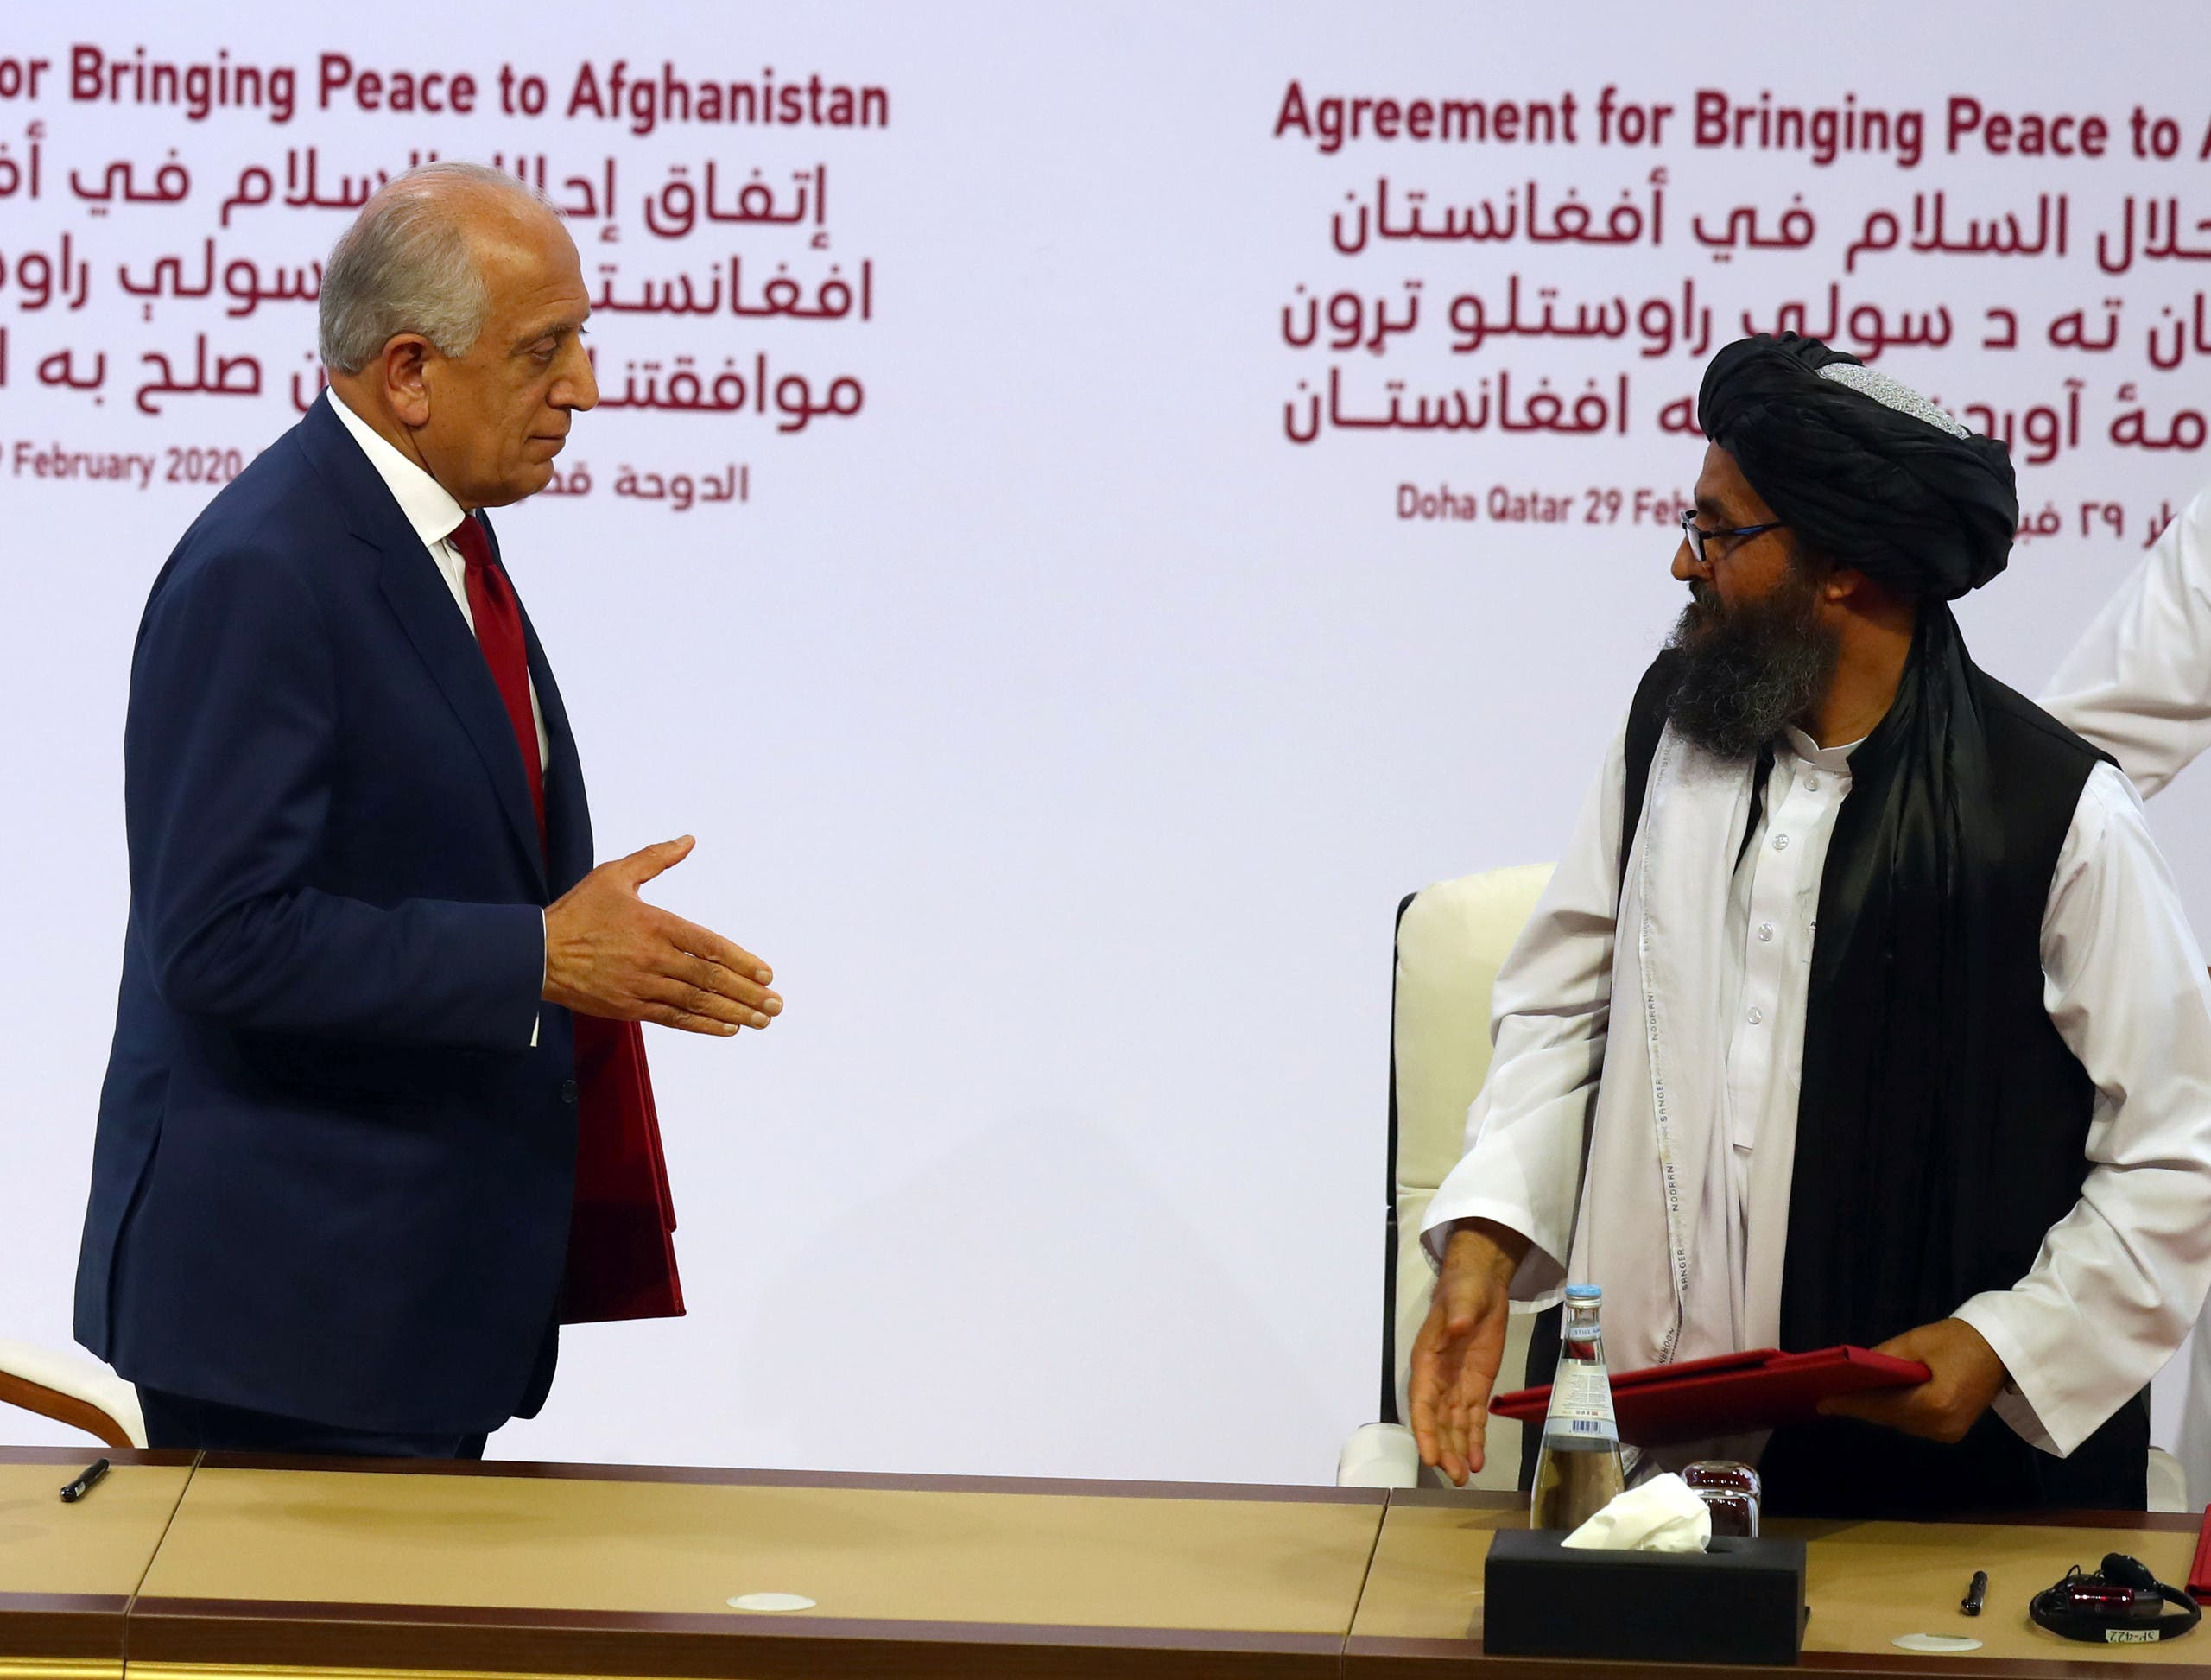 Mullah Abdul Ghani Baradar, the leader of the Taliban delegation, left, and Zalmay Khalilzad, US envoy for peace in Afghanistan, are seen after signing an agreement in Doha, Qatar on February 29, 2020. (Reuters)